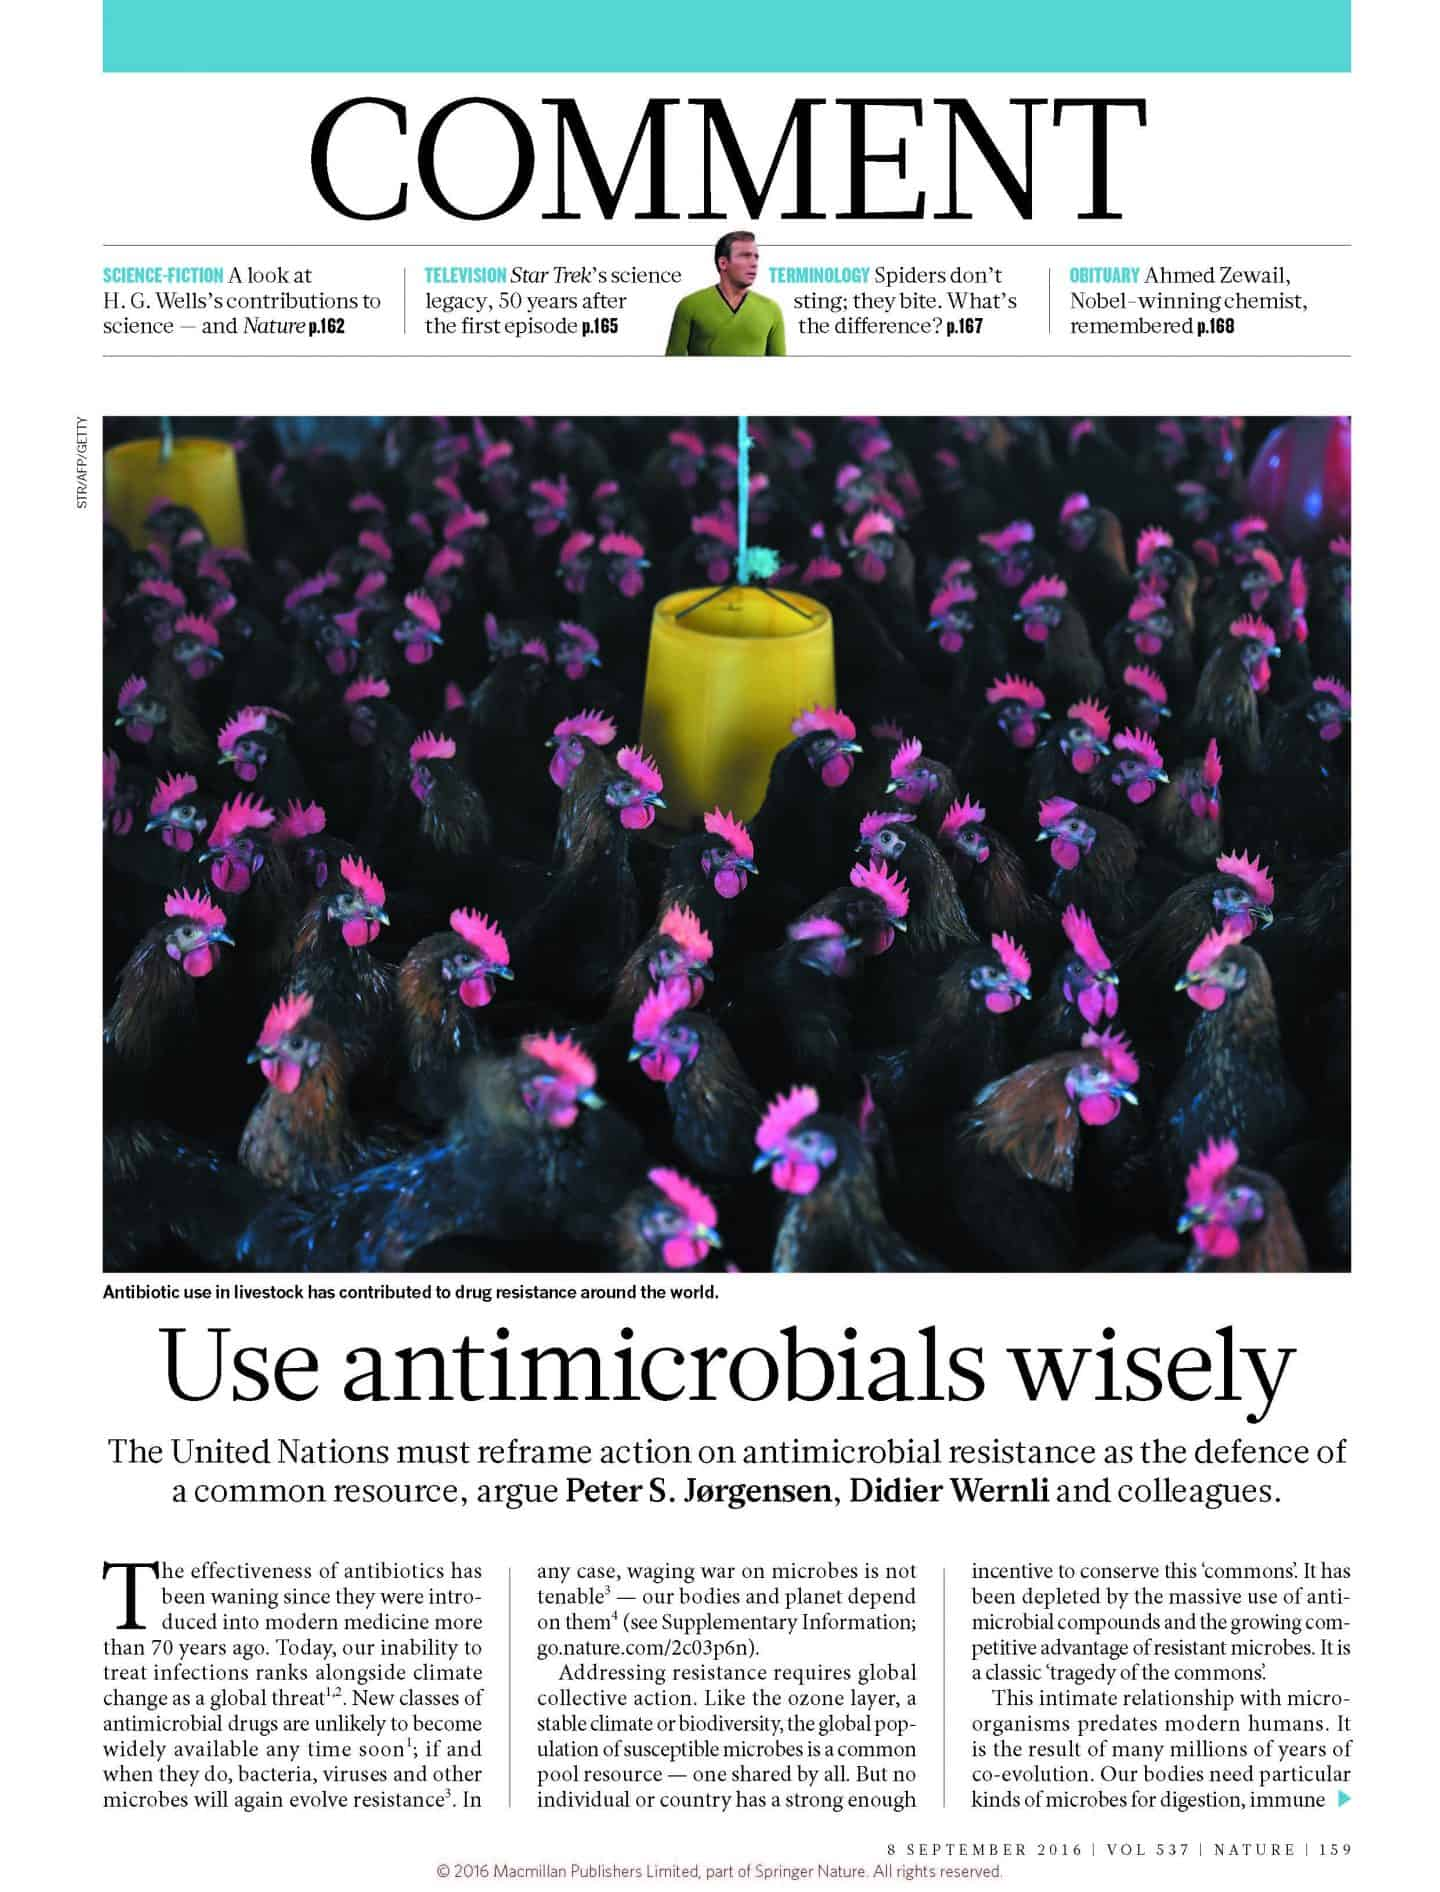 Use antimicrobials wisely